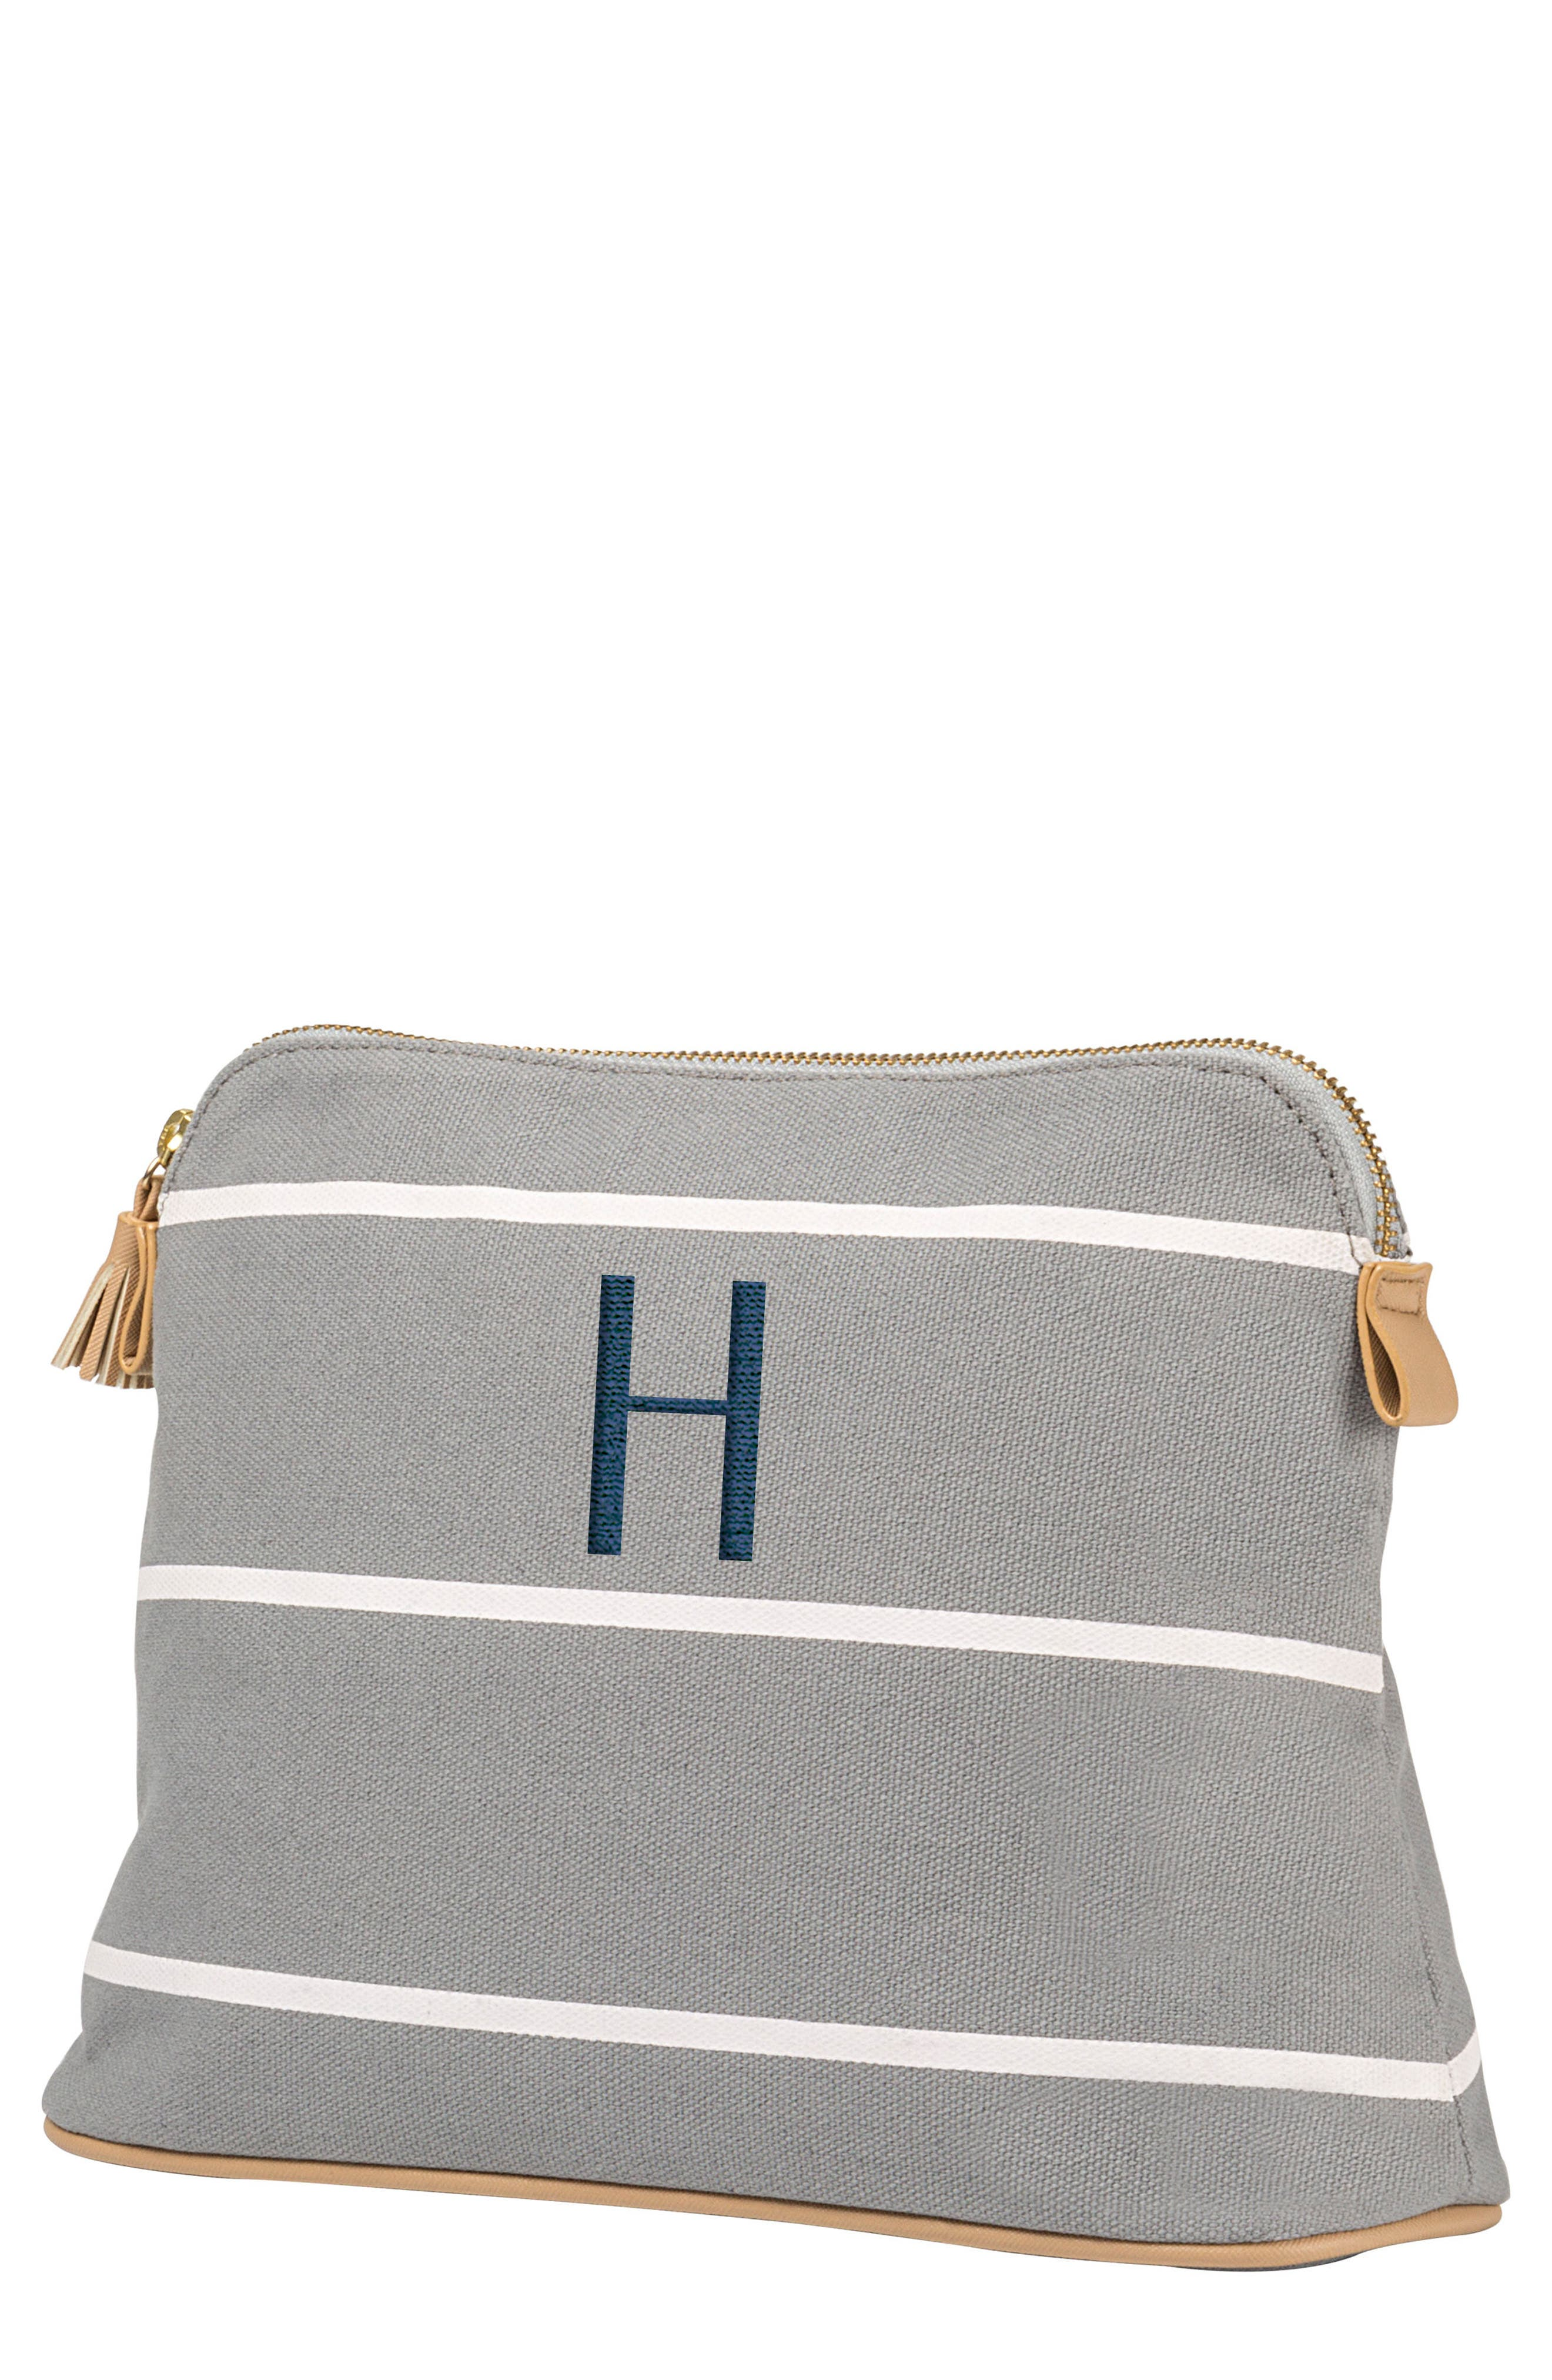 Monogram Cosmetics Bag,                         Main,                         color, GREY H